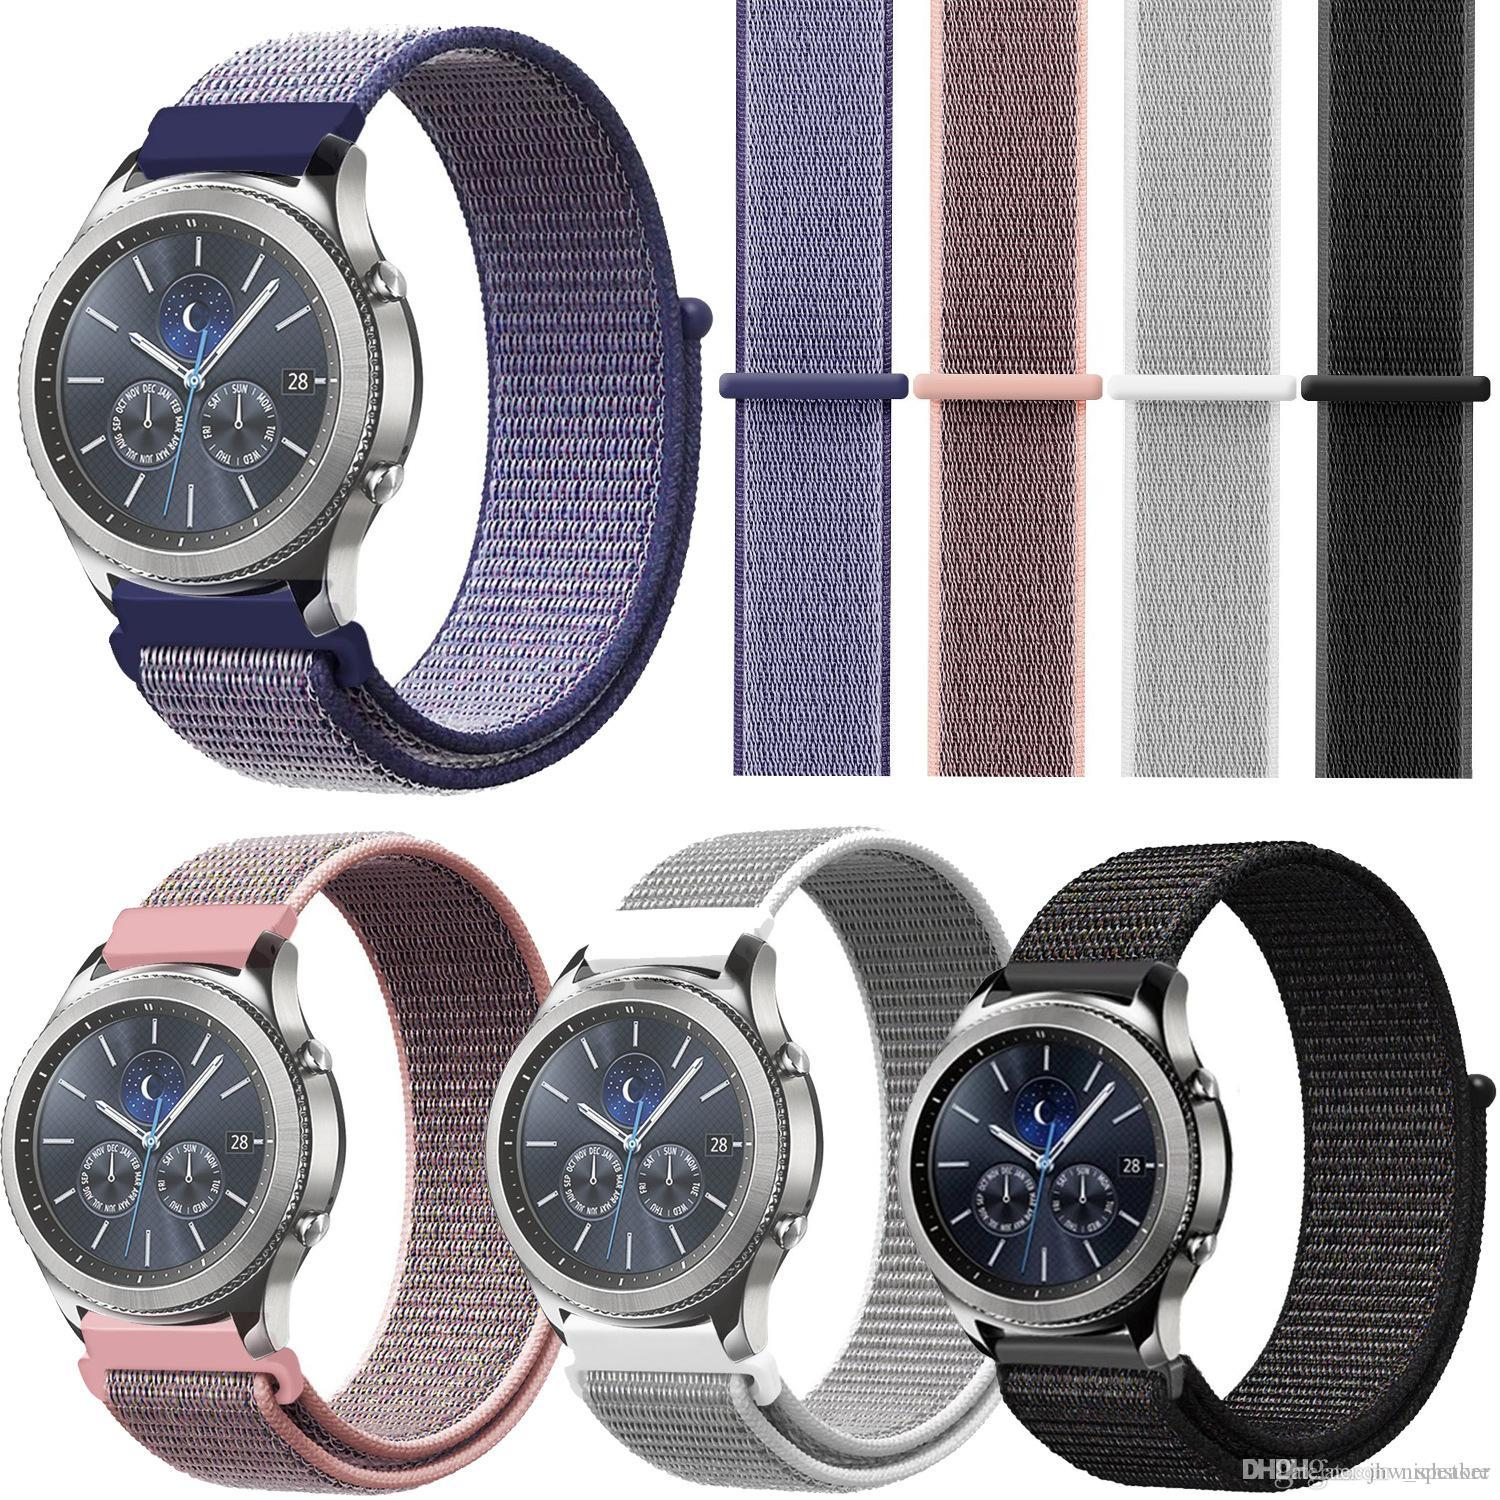 watches s gear features galaxy one samsung but only mwc add new orig neo samsungs camera has article jan a